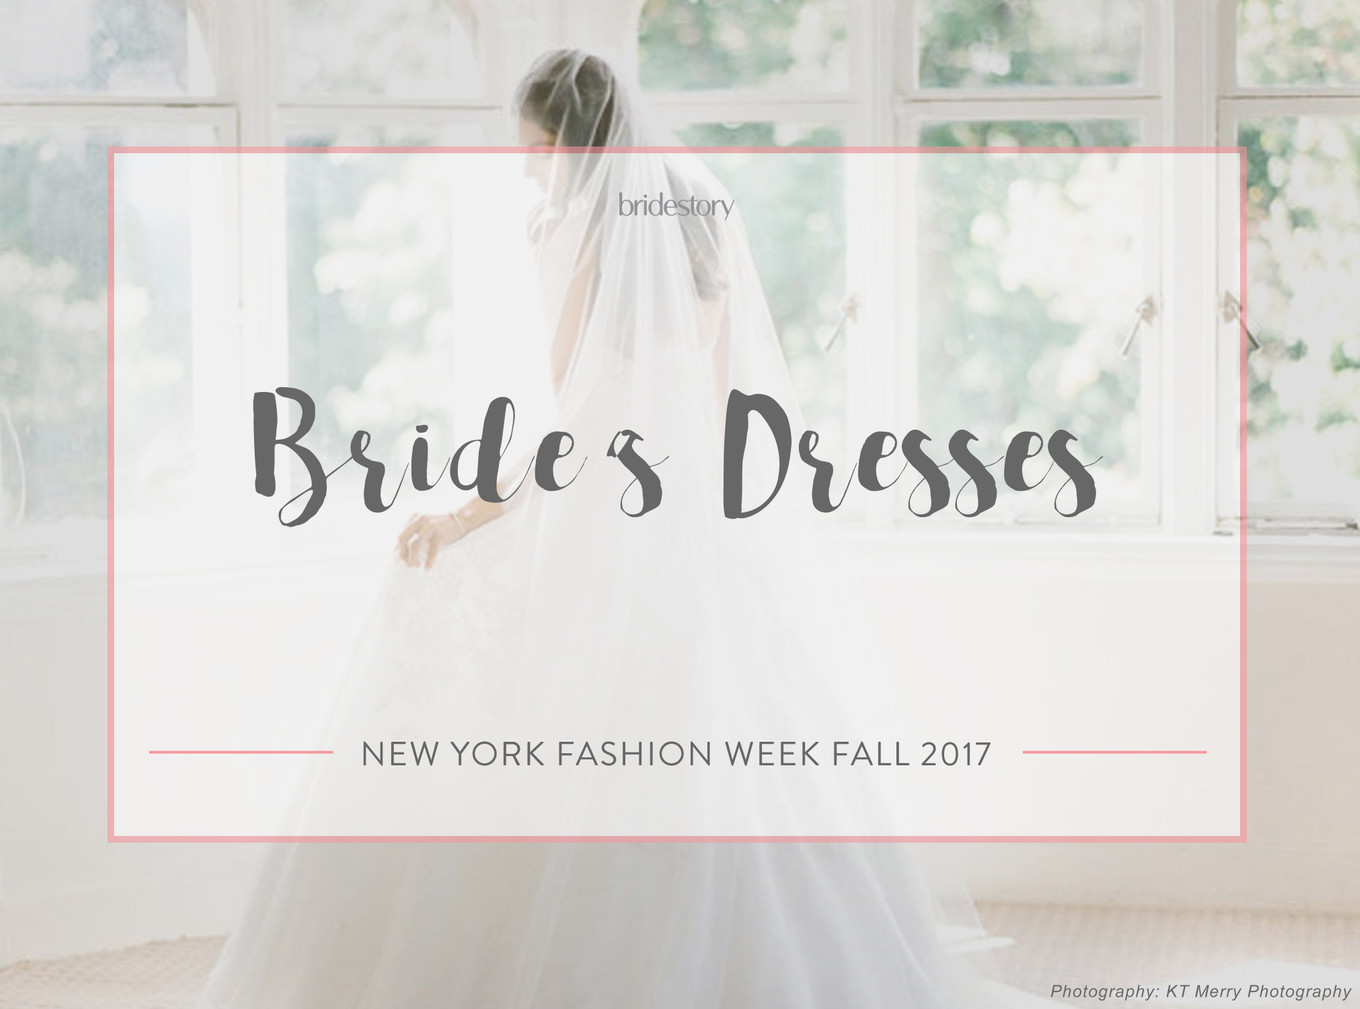 25 Wedding Ideas from New York Fashion Week Fall 2017 - Bridestory Blog